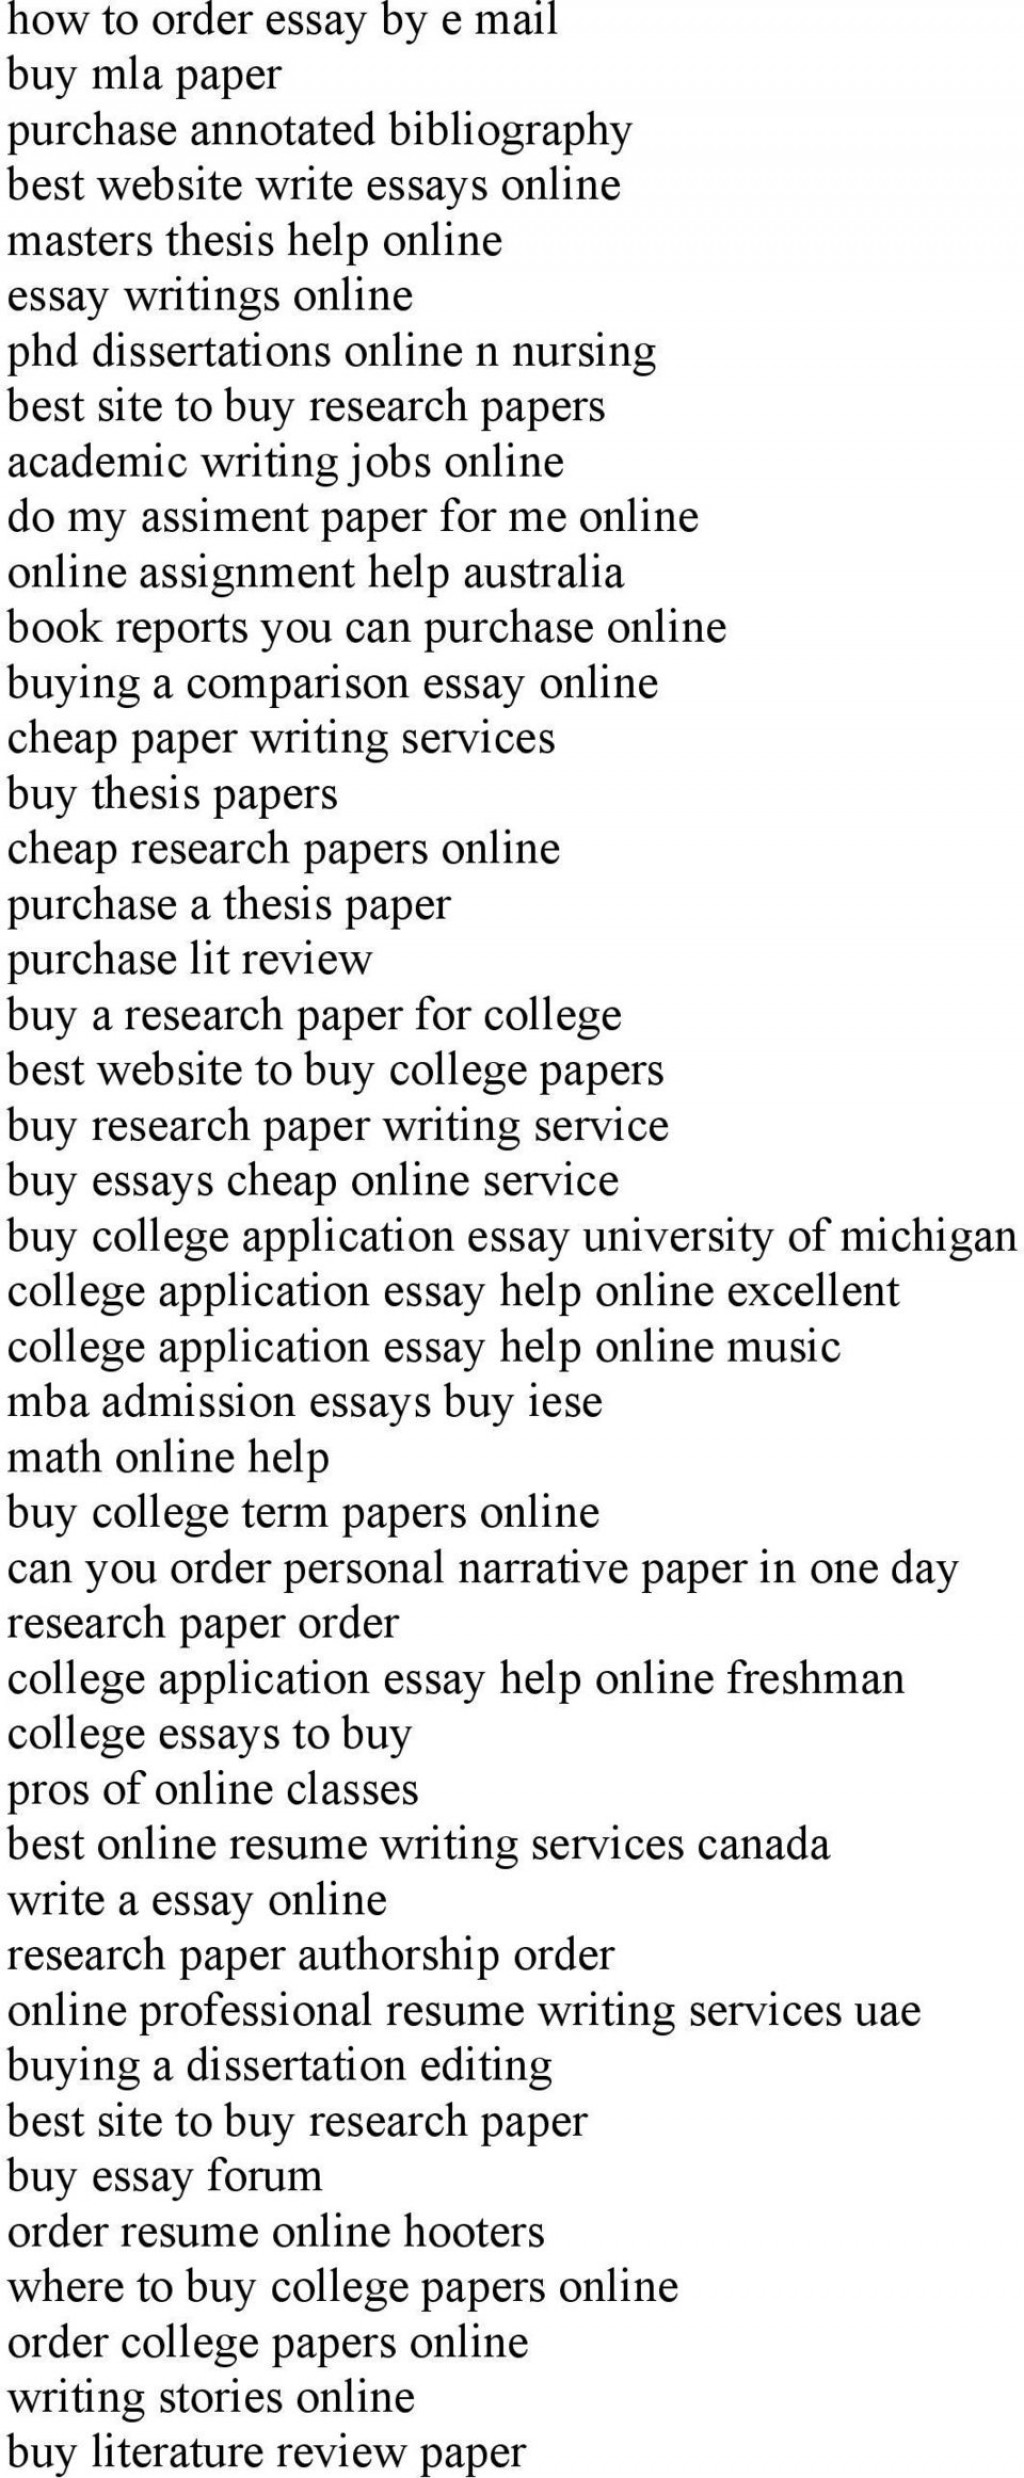 014 Research Paper Buying For College Page 5 Top A Buy Cheap Large